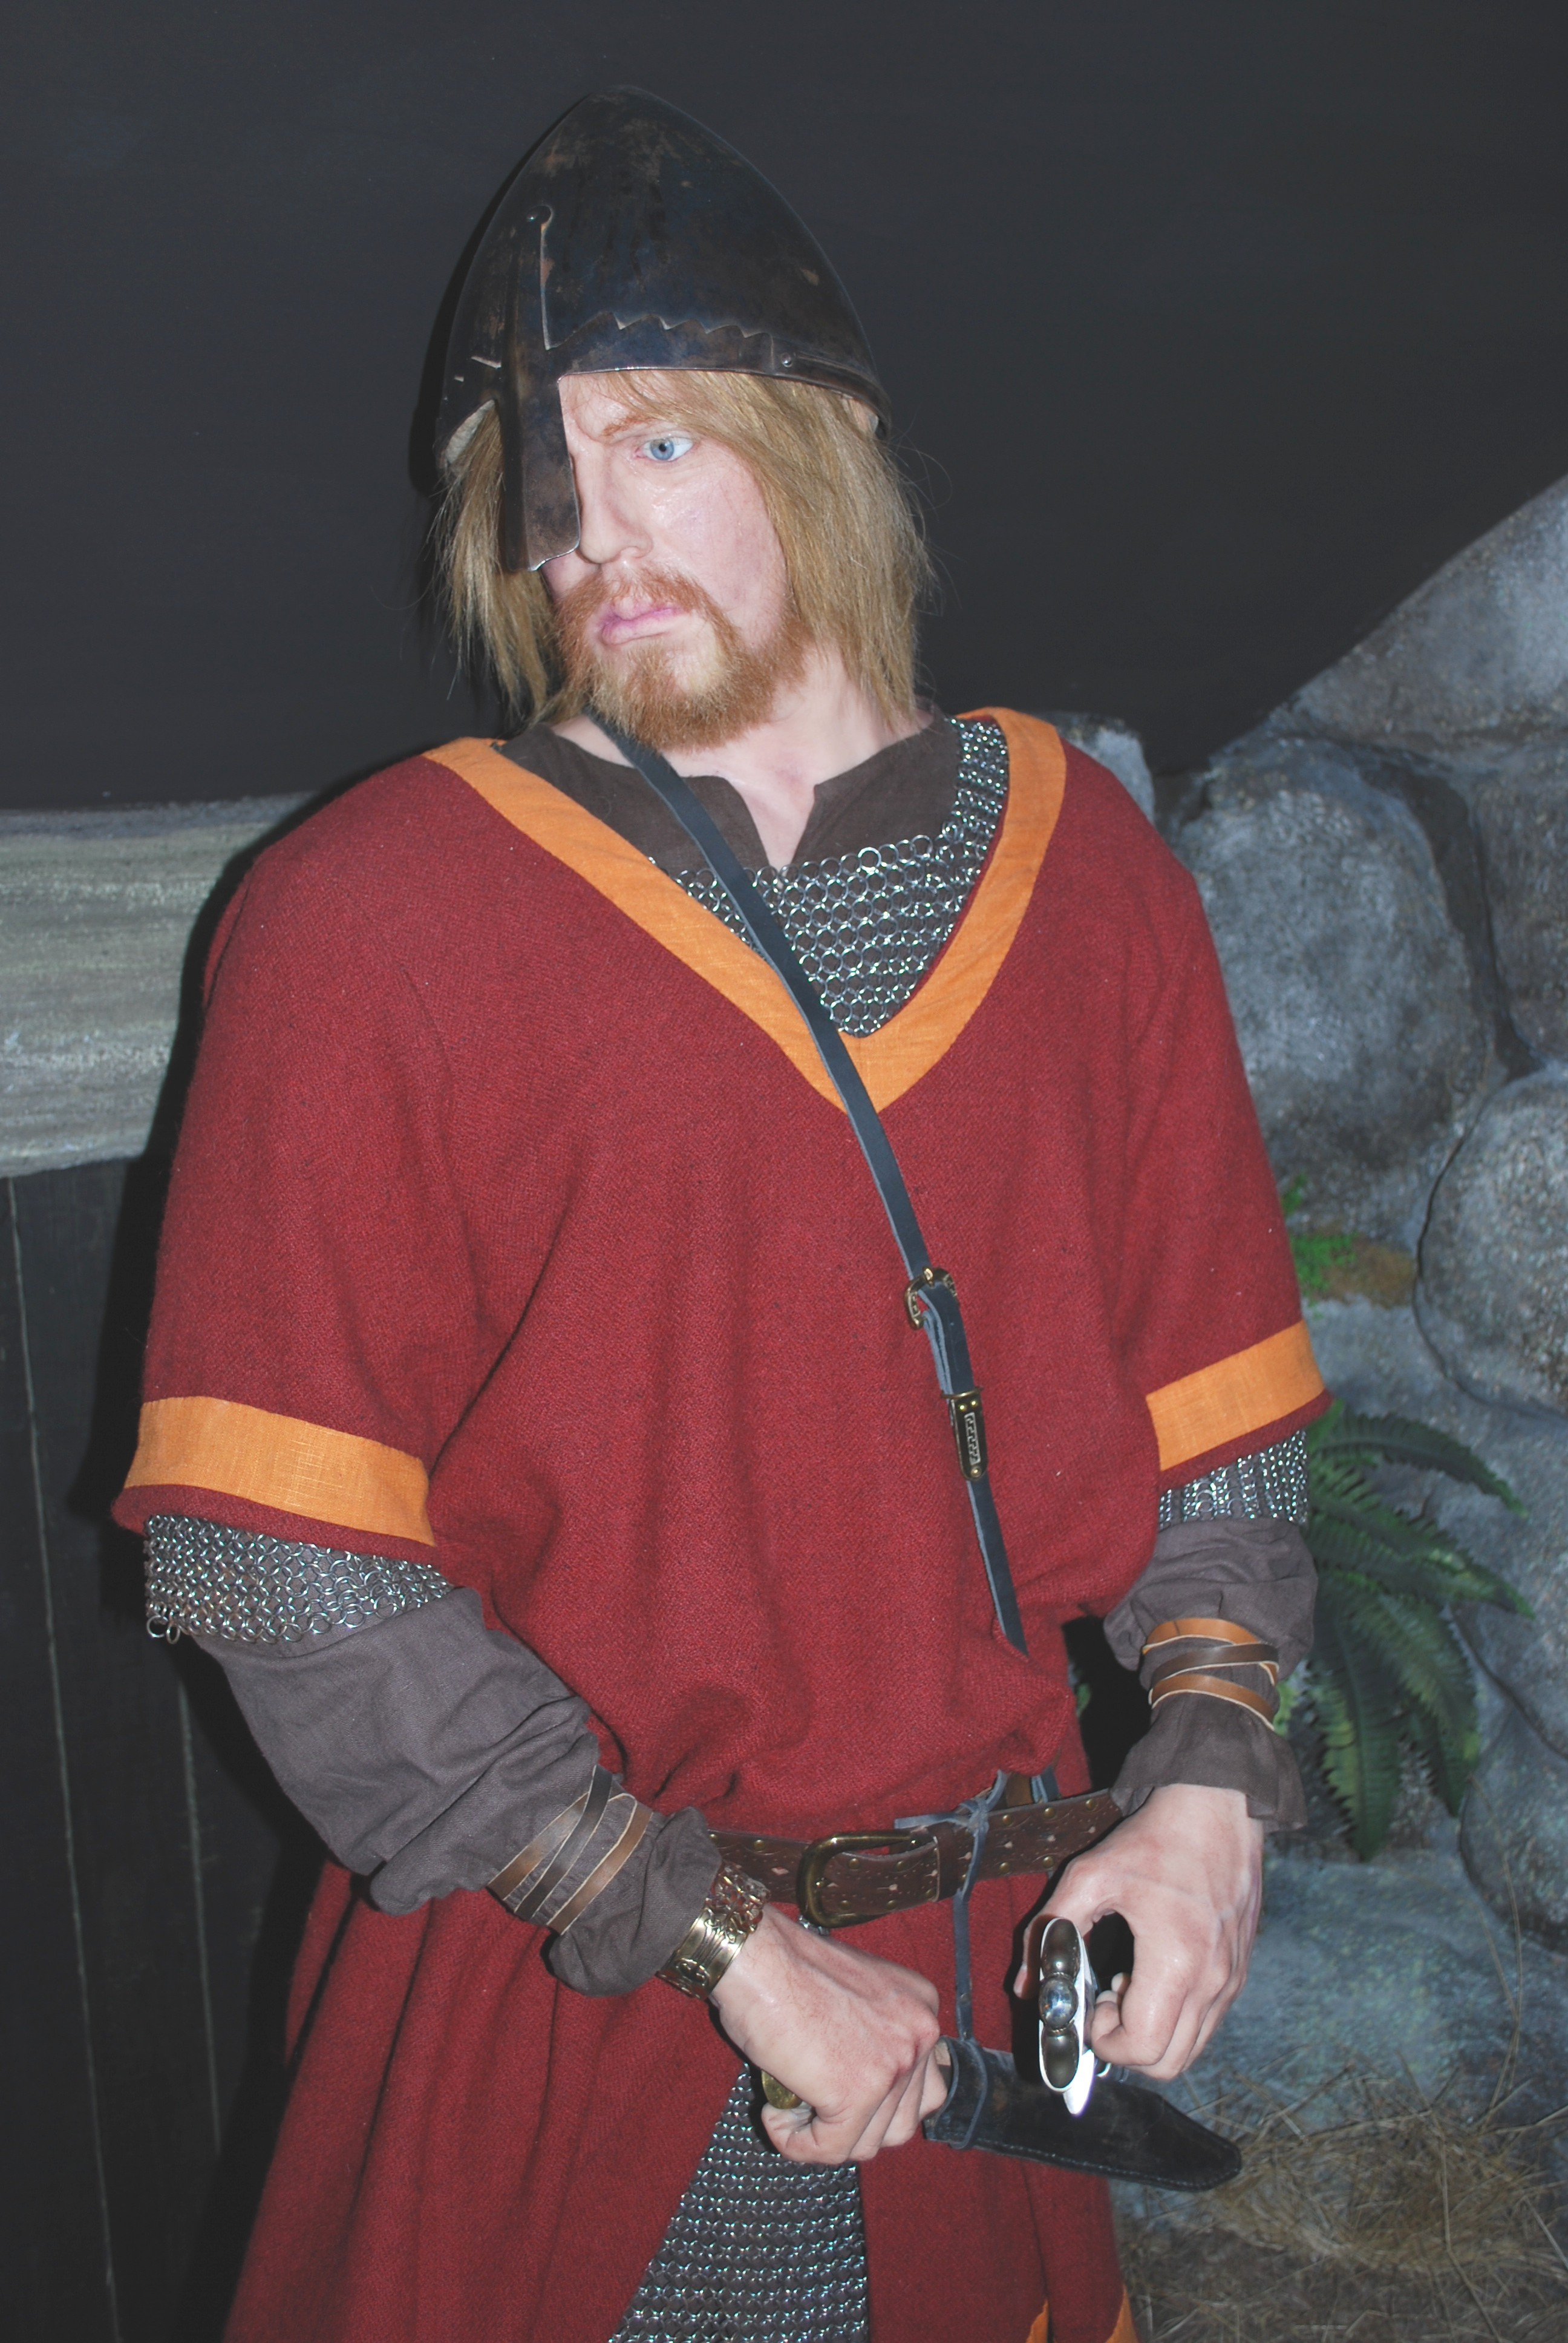 Wiking in the wax museum.